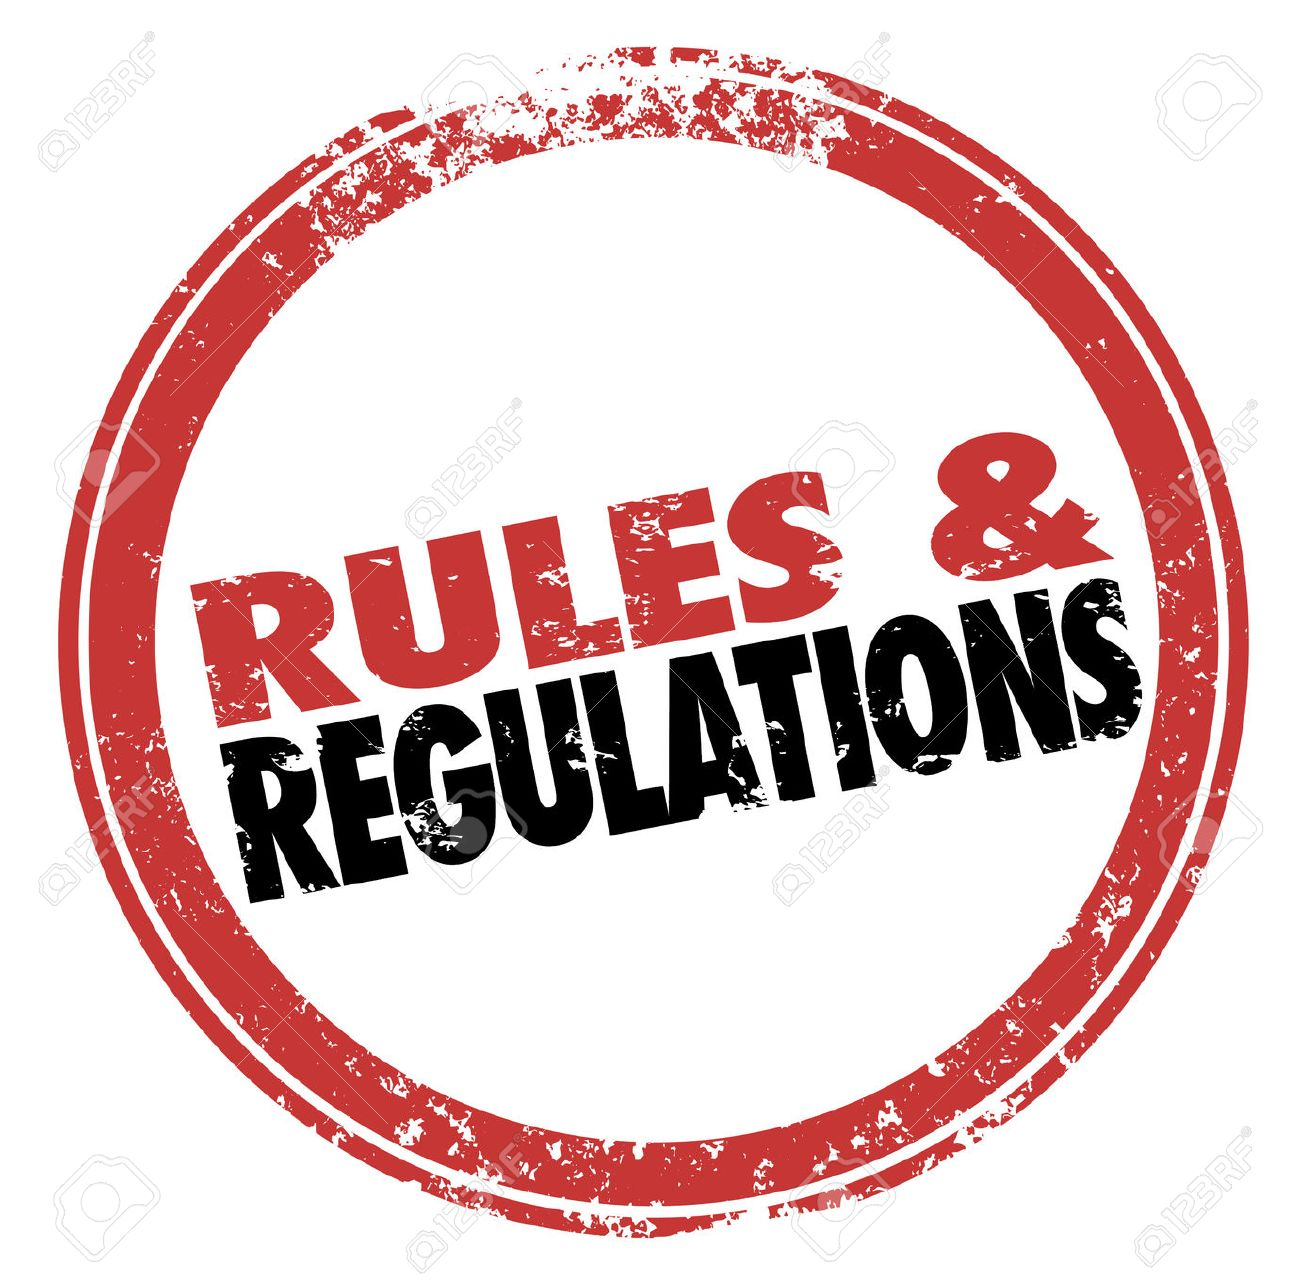 Image result for rules and regulations